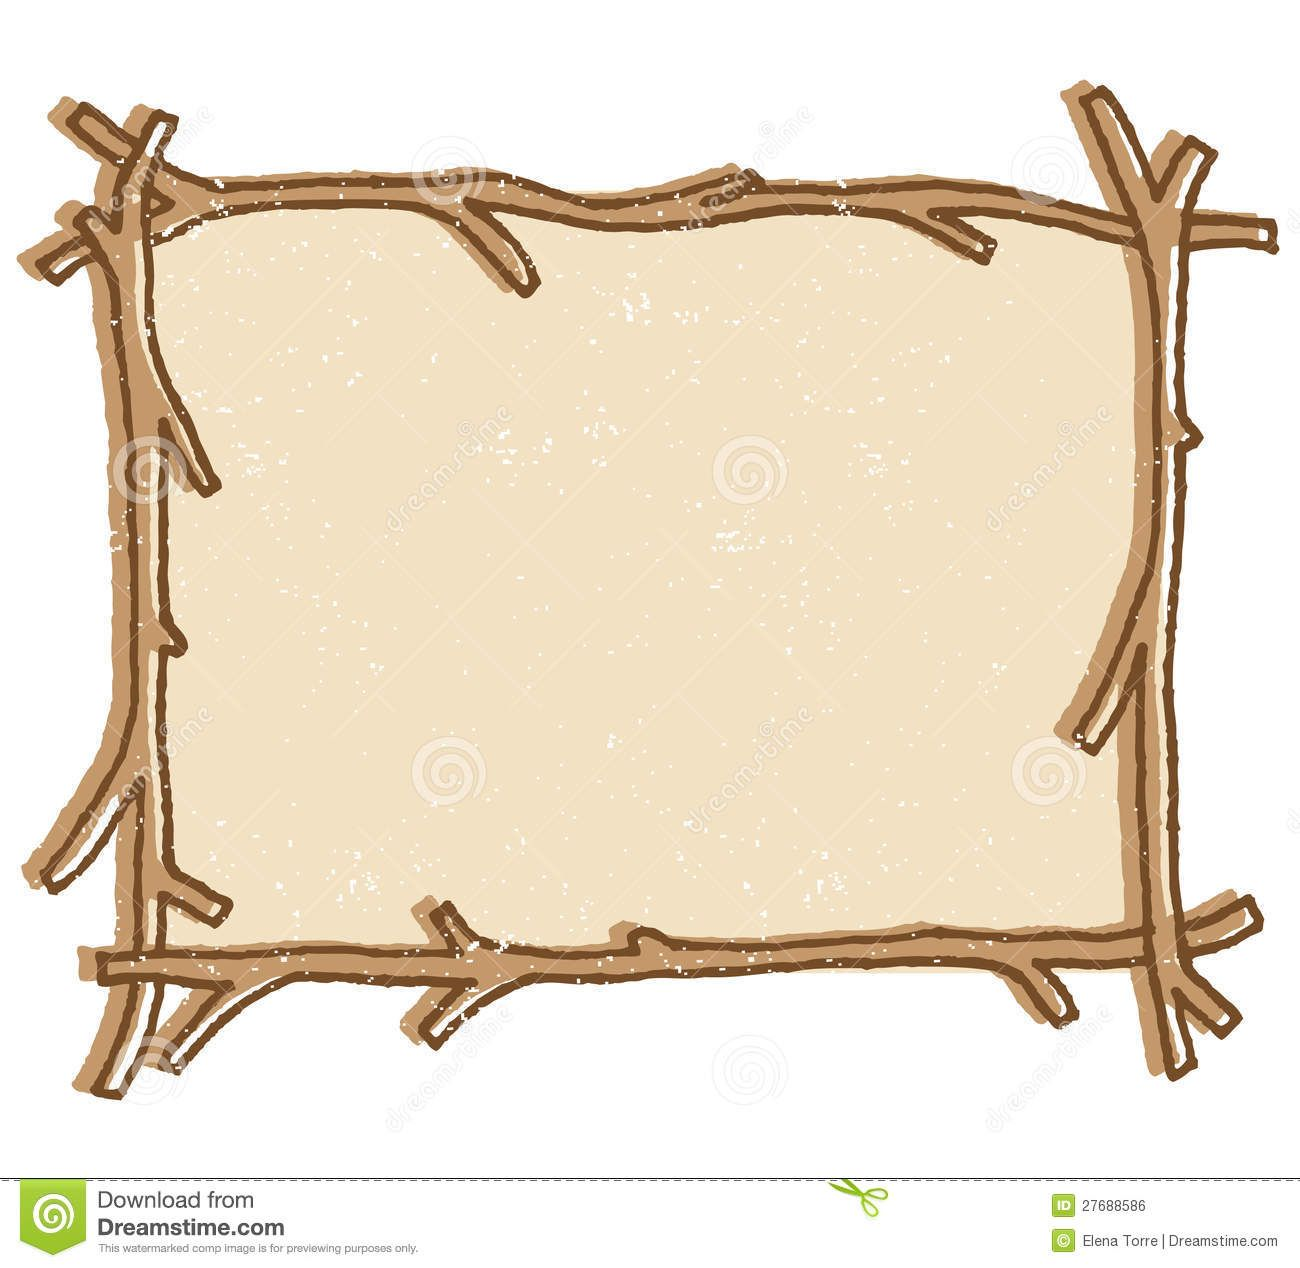 Free twig or branch borders clipart illustration of a twig stick free twig or branch borders clipart illustration of a twig stick frame isolated on a jeuxipadfo Choice Image